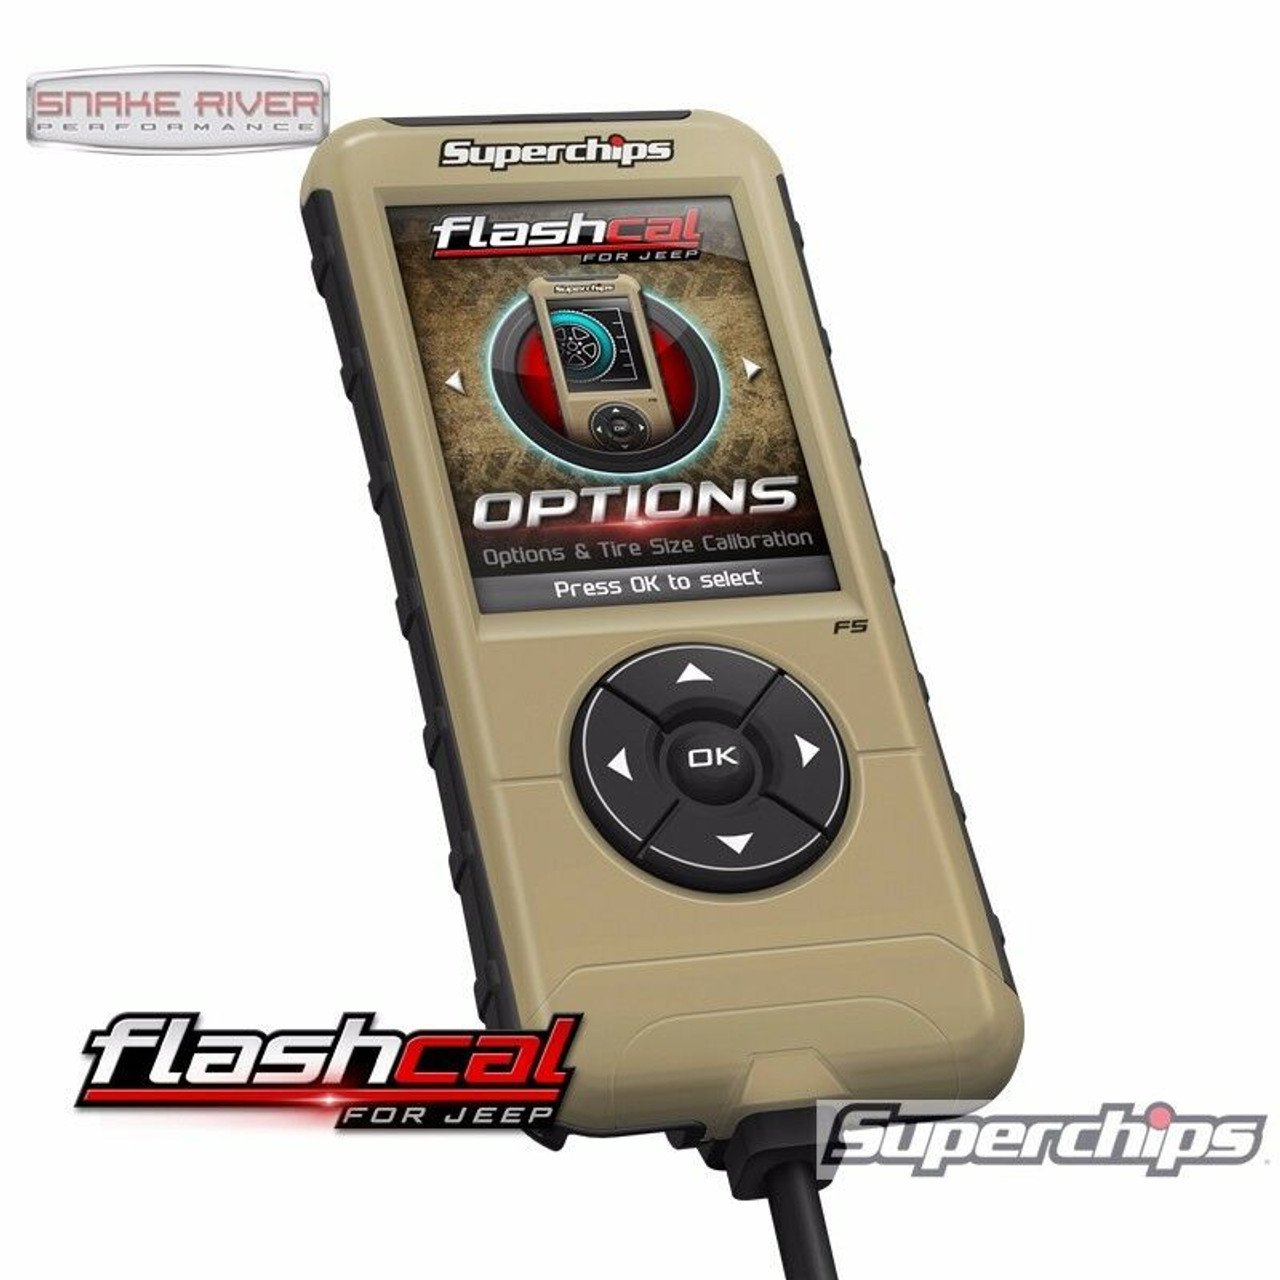 SUPERCHIPS FLASHCAL FOR JEEP 2020 JEEP GLADIATOR JT CALIBRATION TOOL 3571-JT